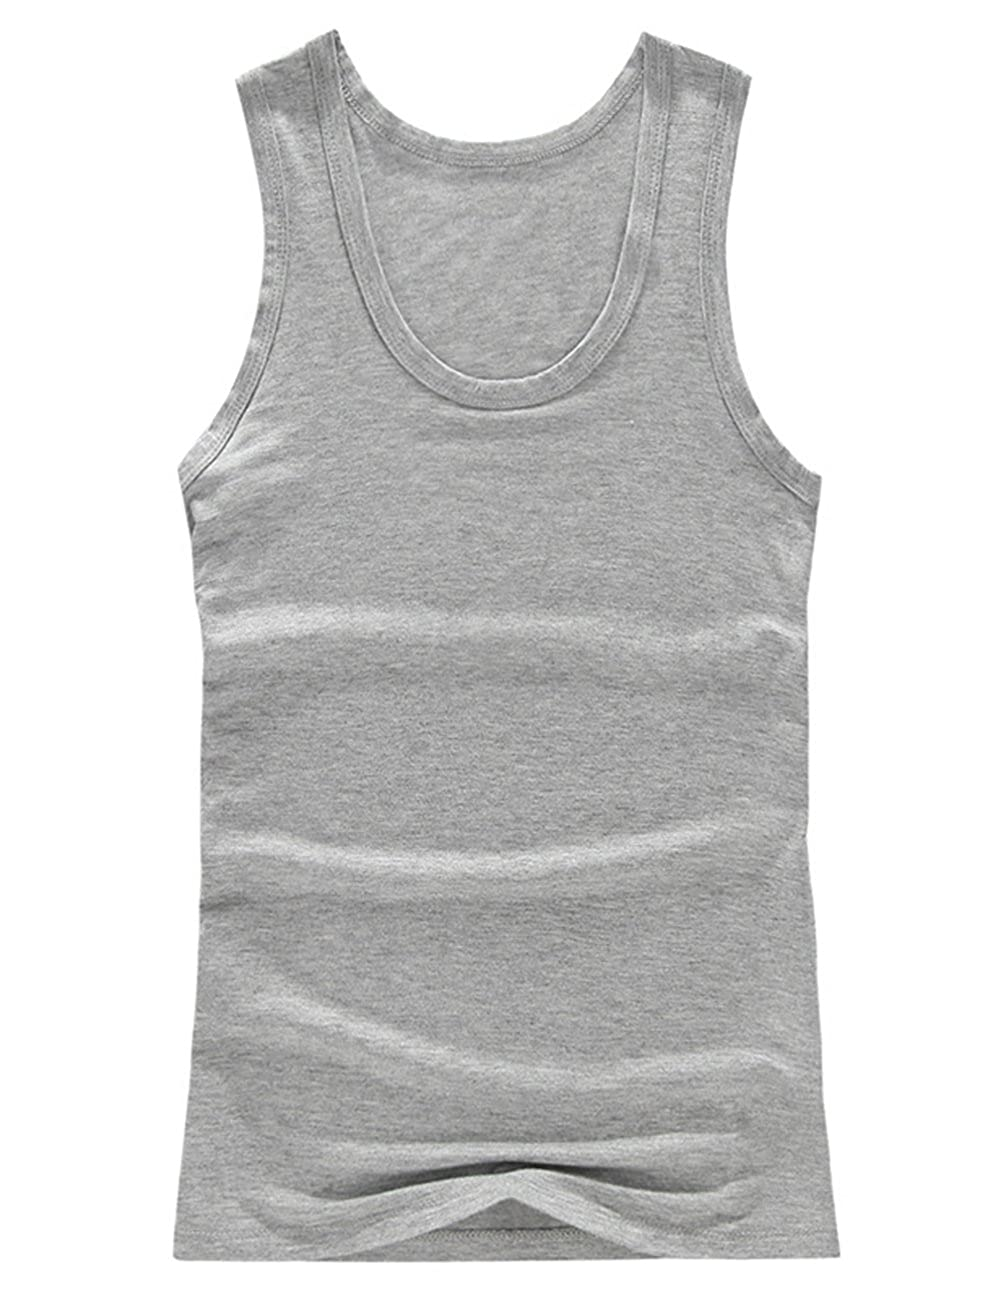 Yiwa Male Modal Vest Solid Color Sleeveless Top Leisure Breathable Home Clothes Festival Birthday Gift